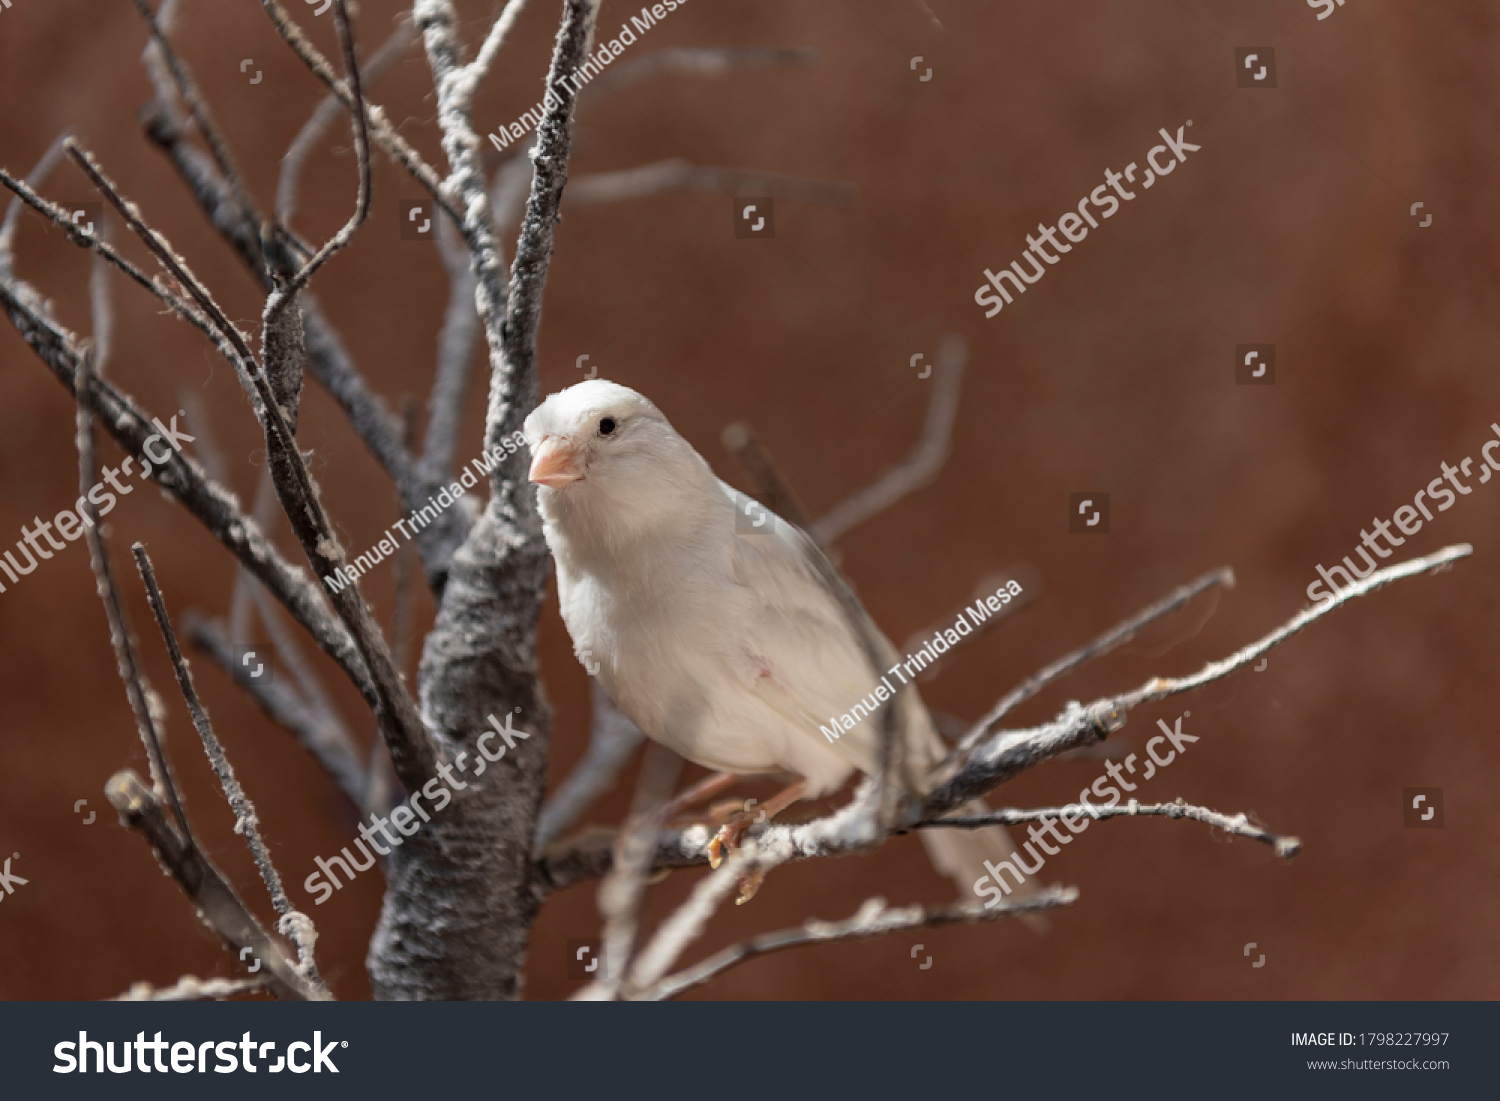 stock-photo-a-white-canary-on-a-branch-1